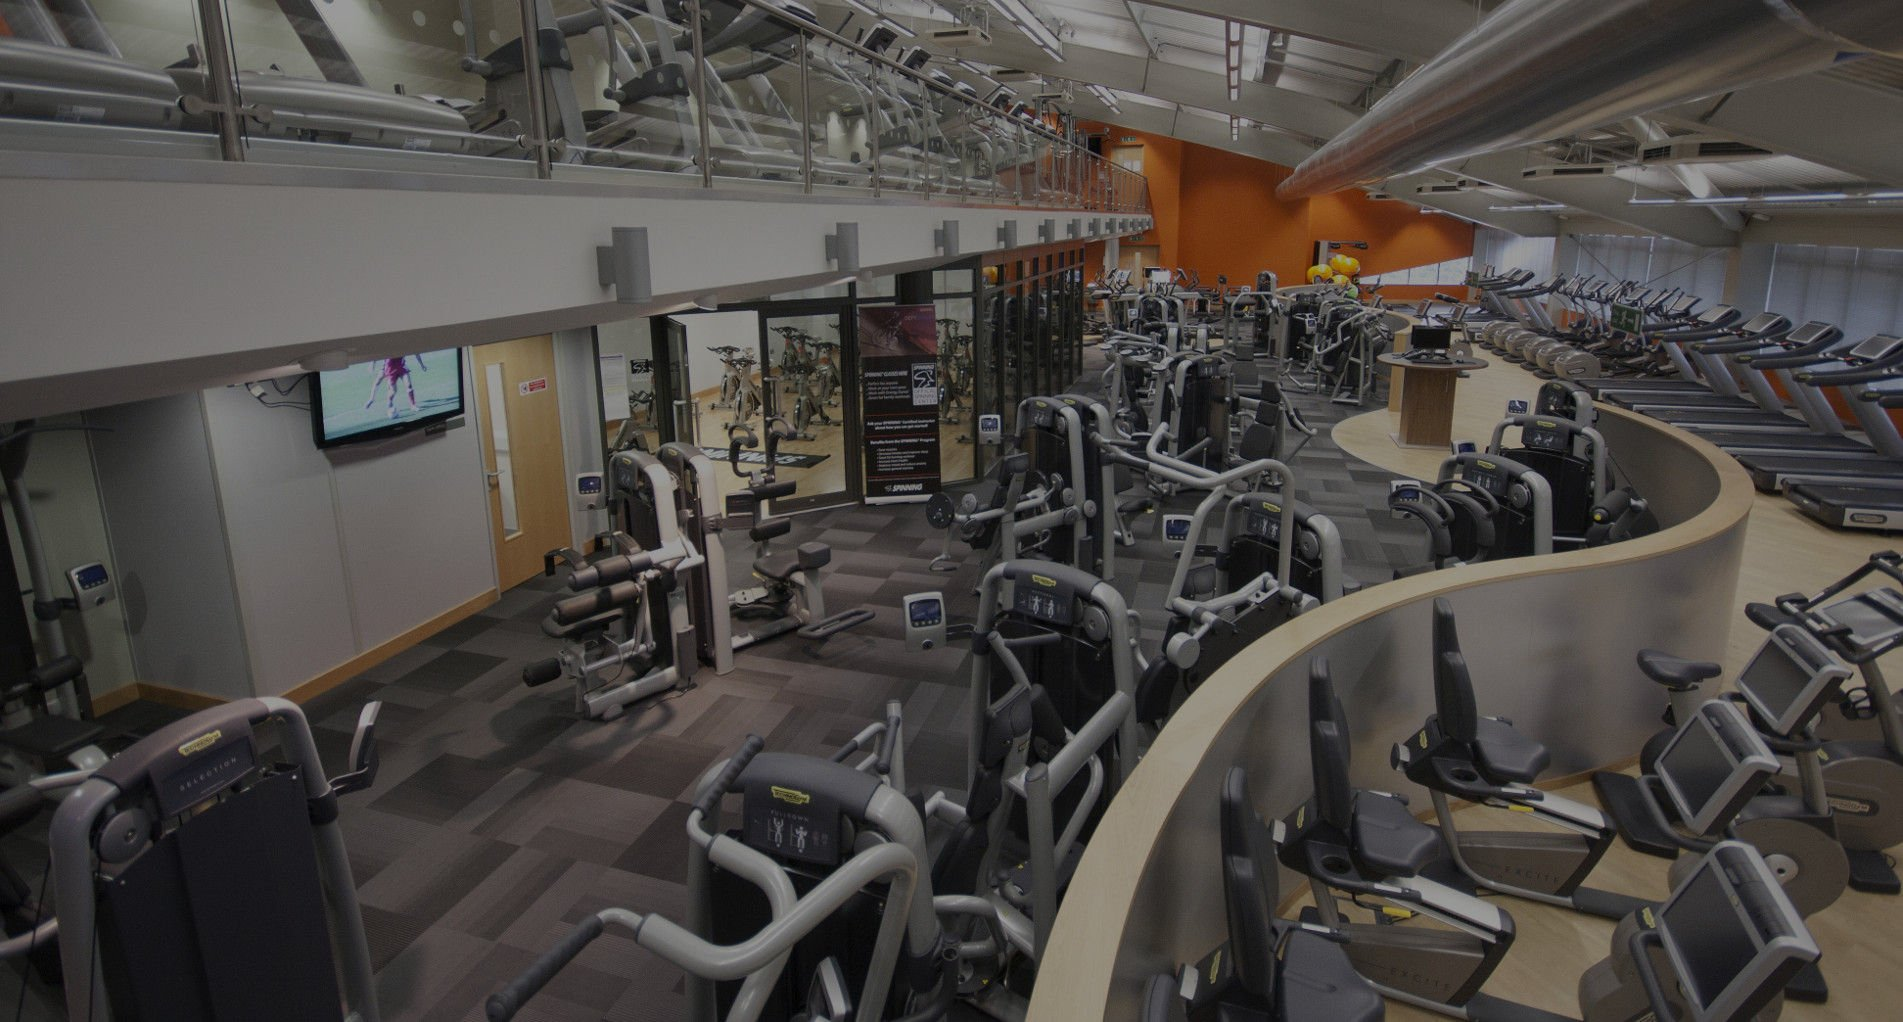 Harlow Leisurezone – a state-of-the-art gym, pool, and sports arena